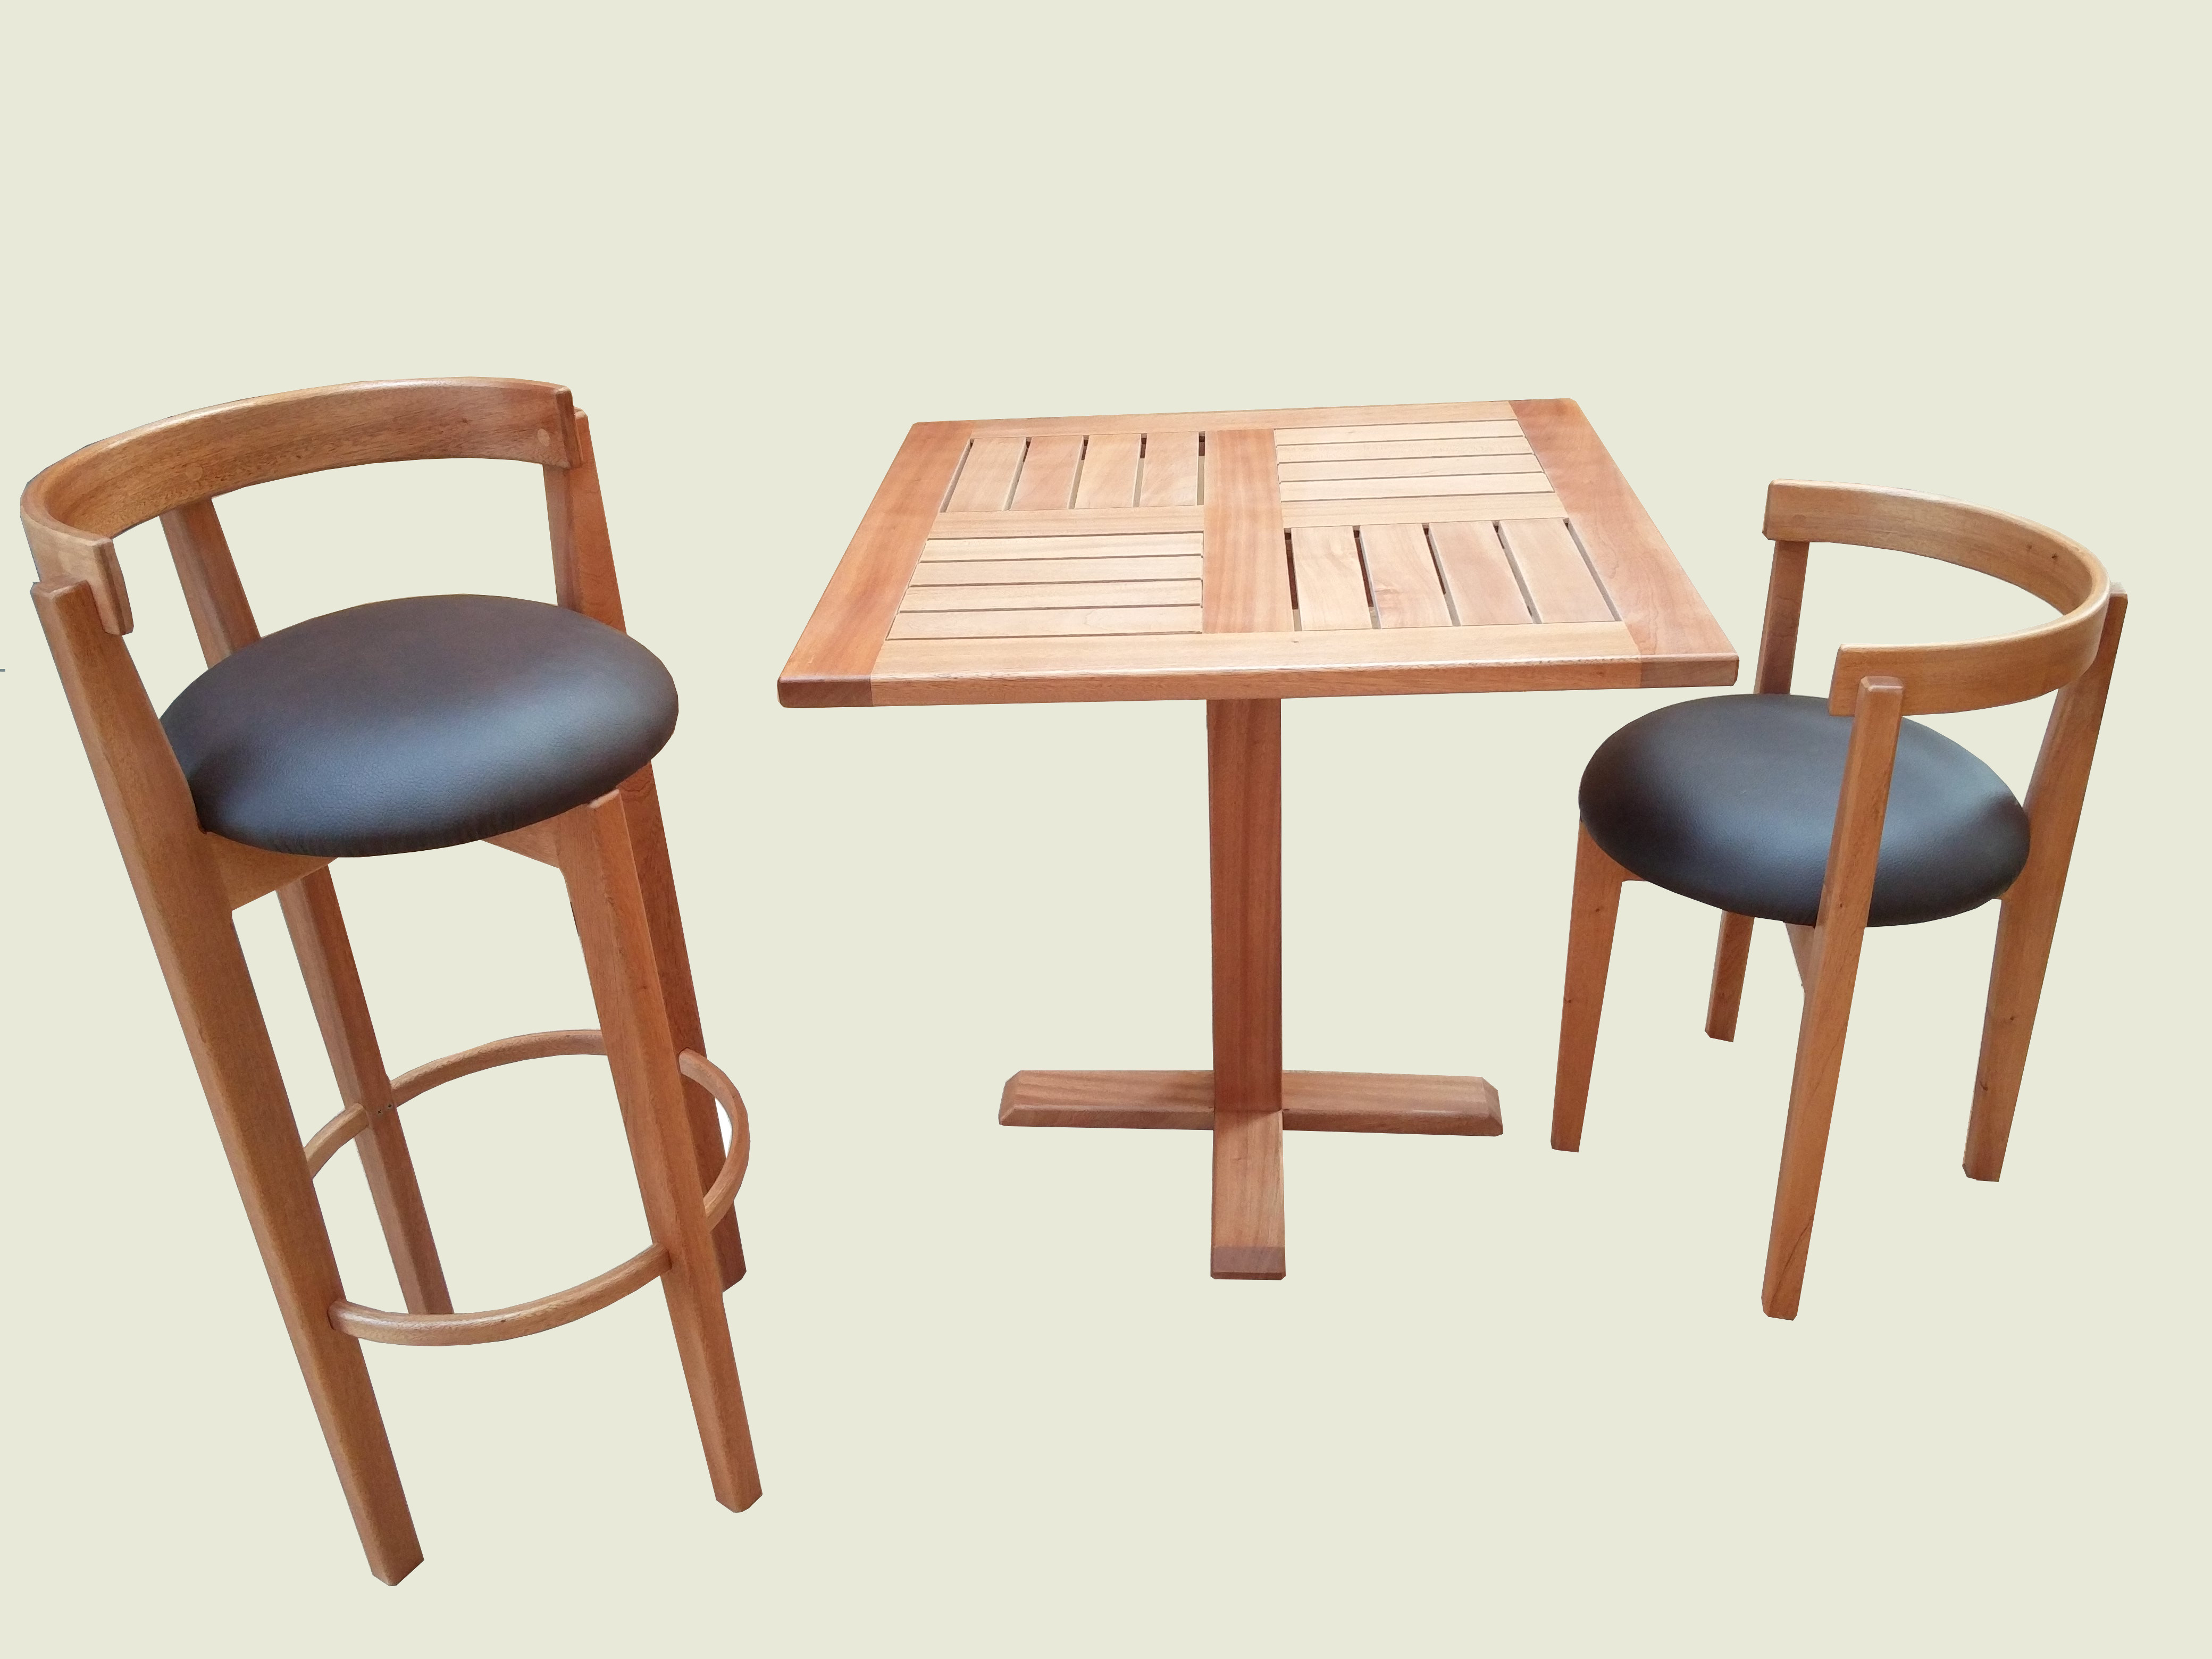 Tabouret Table et Chaise de bar